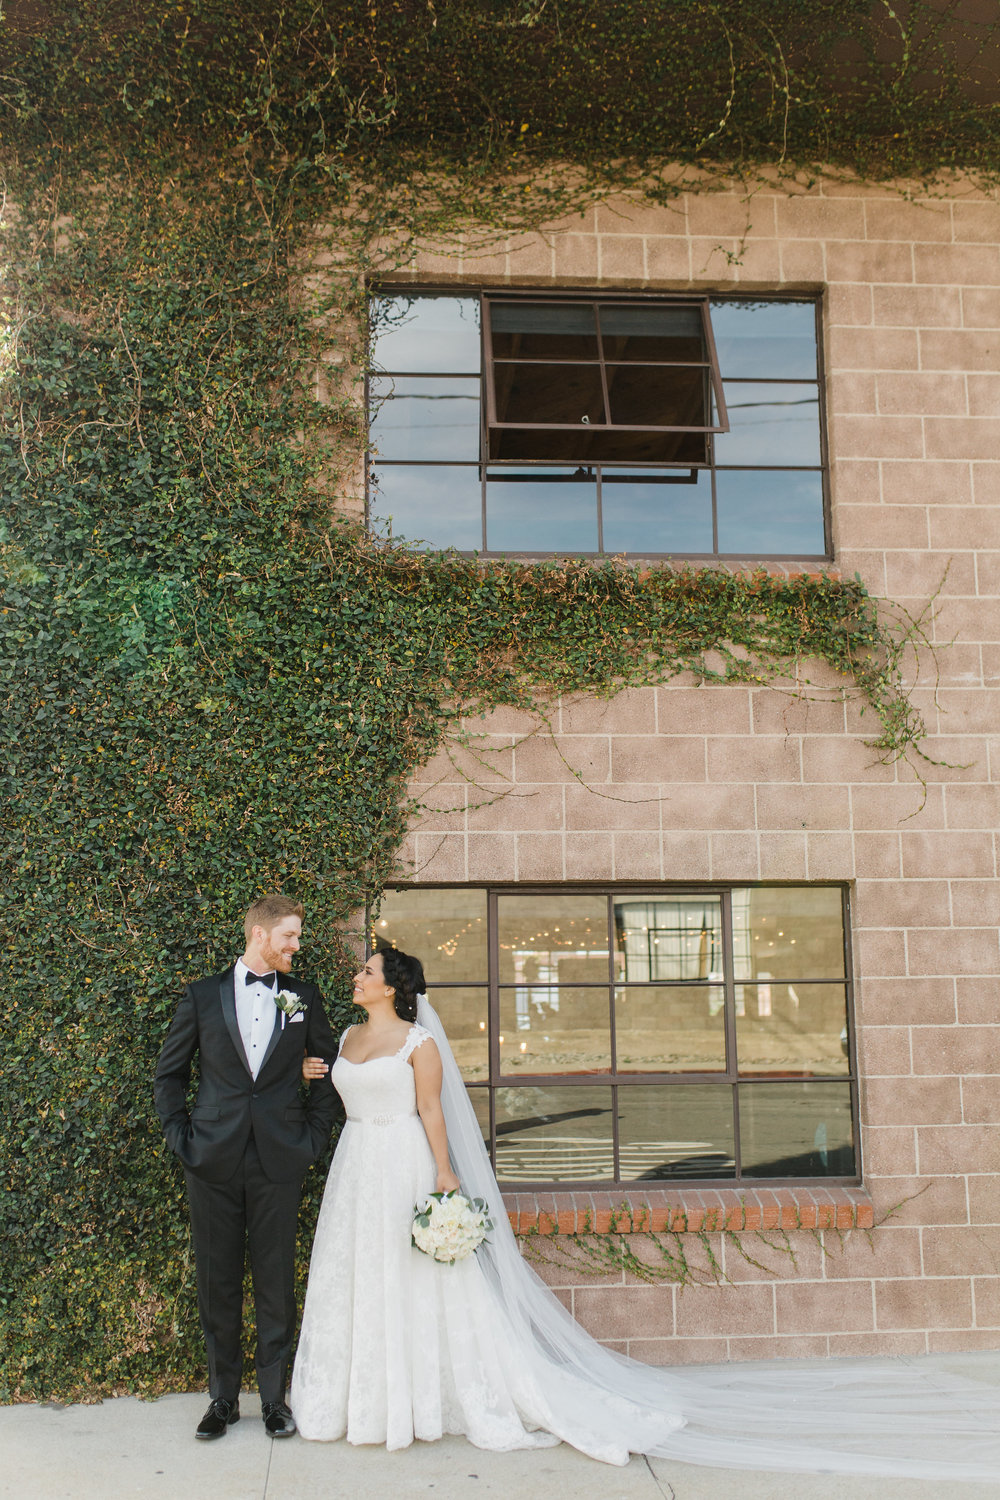 Smoky-Hollow-Studios-Wedding-El-Segundo-Venue